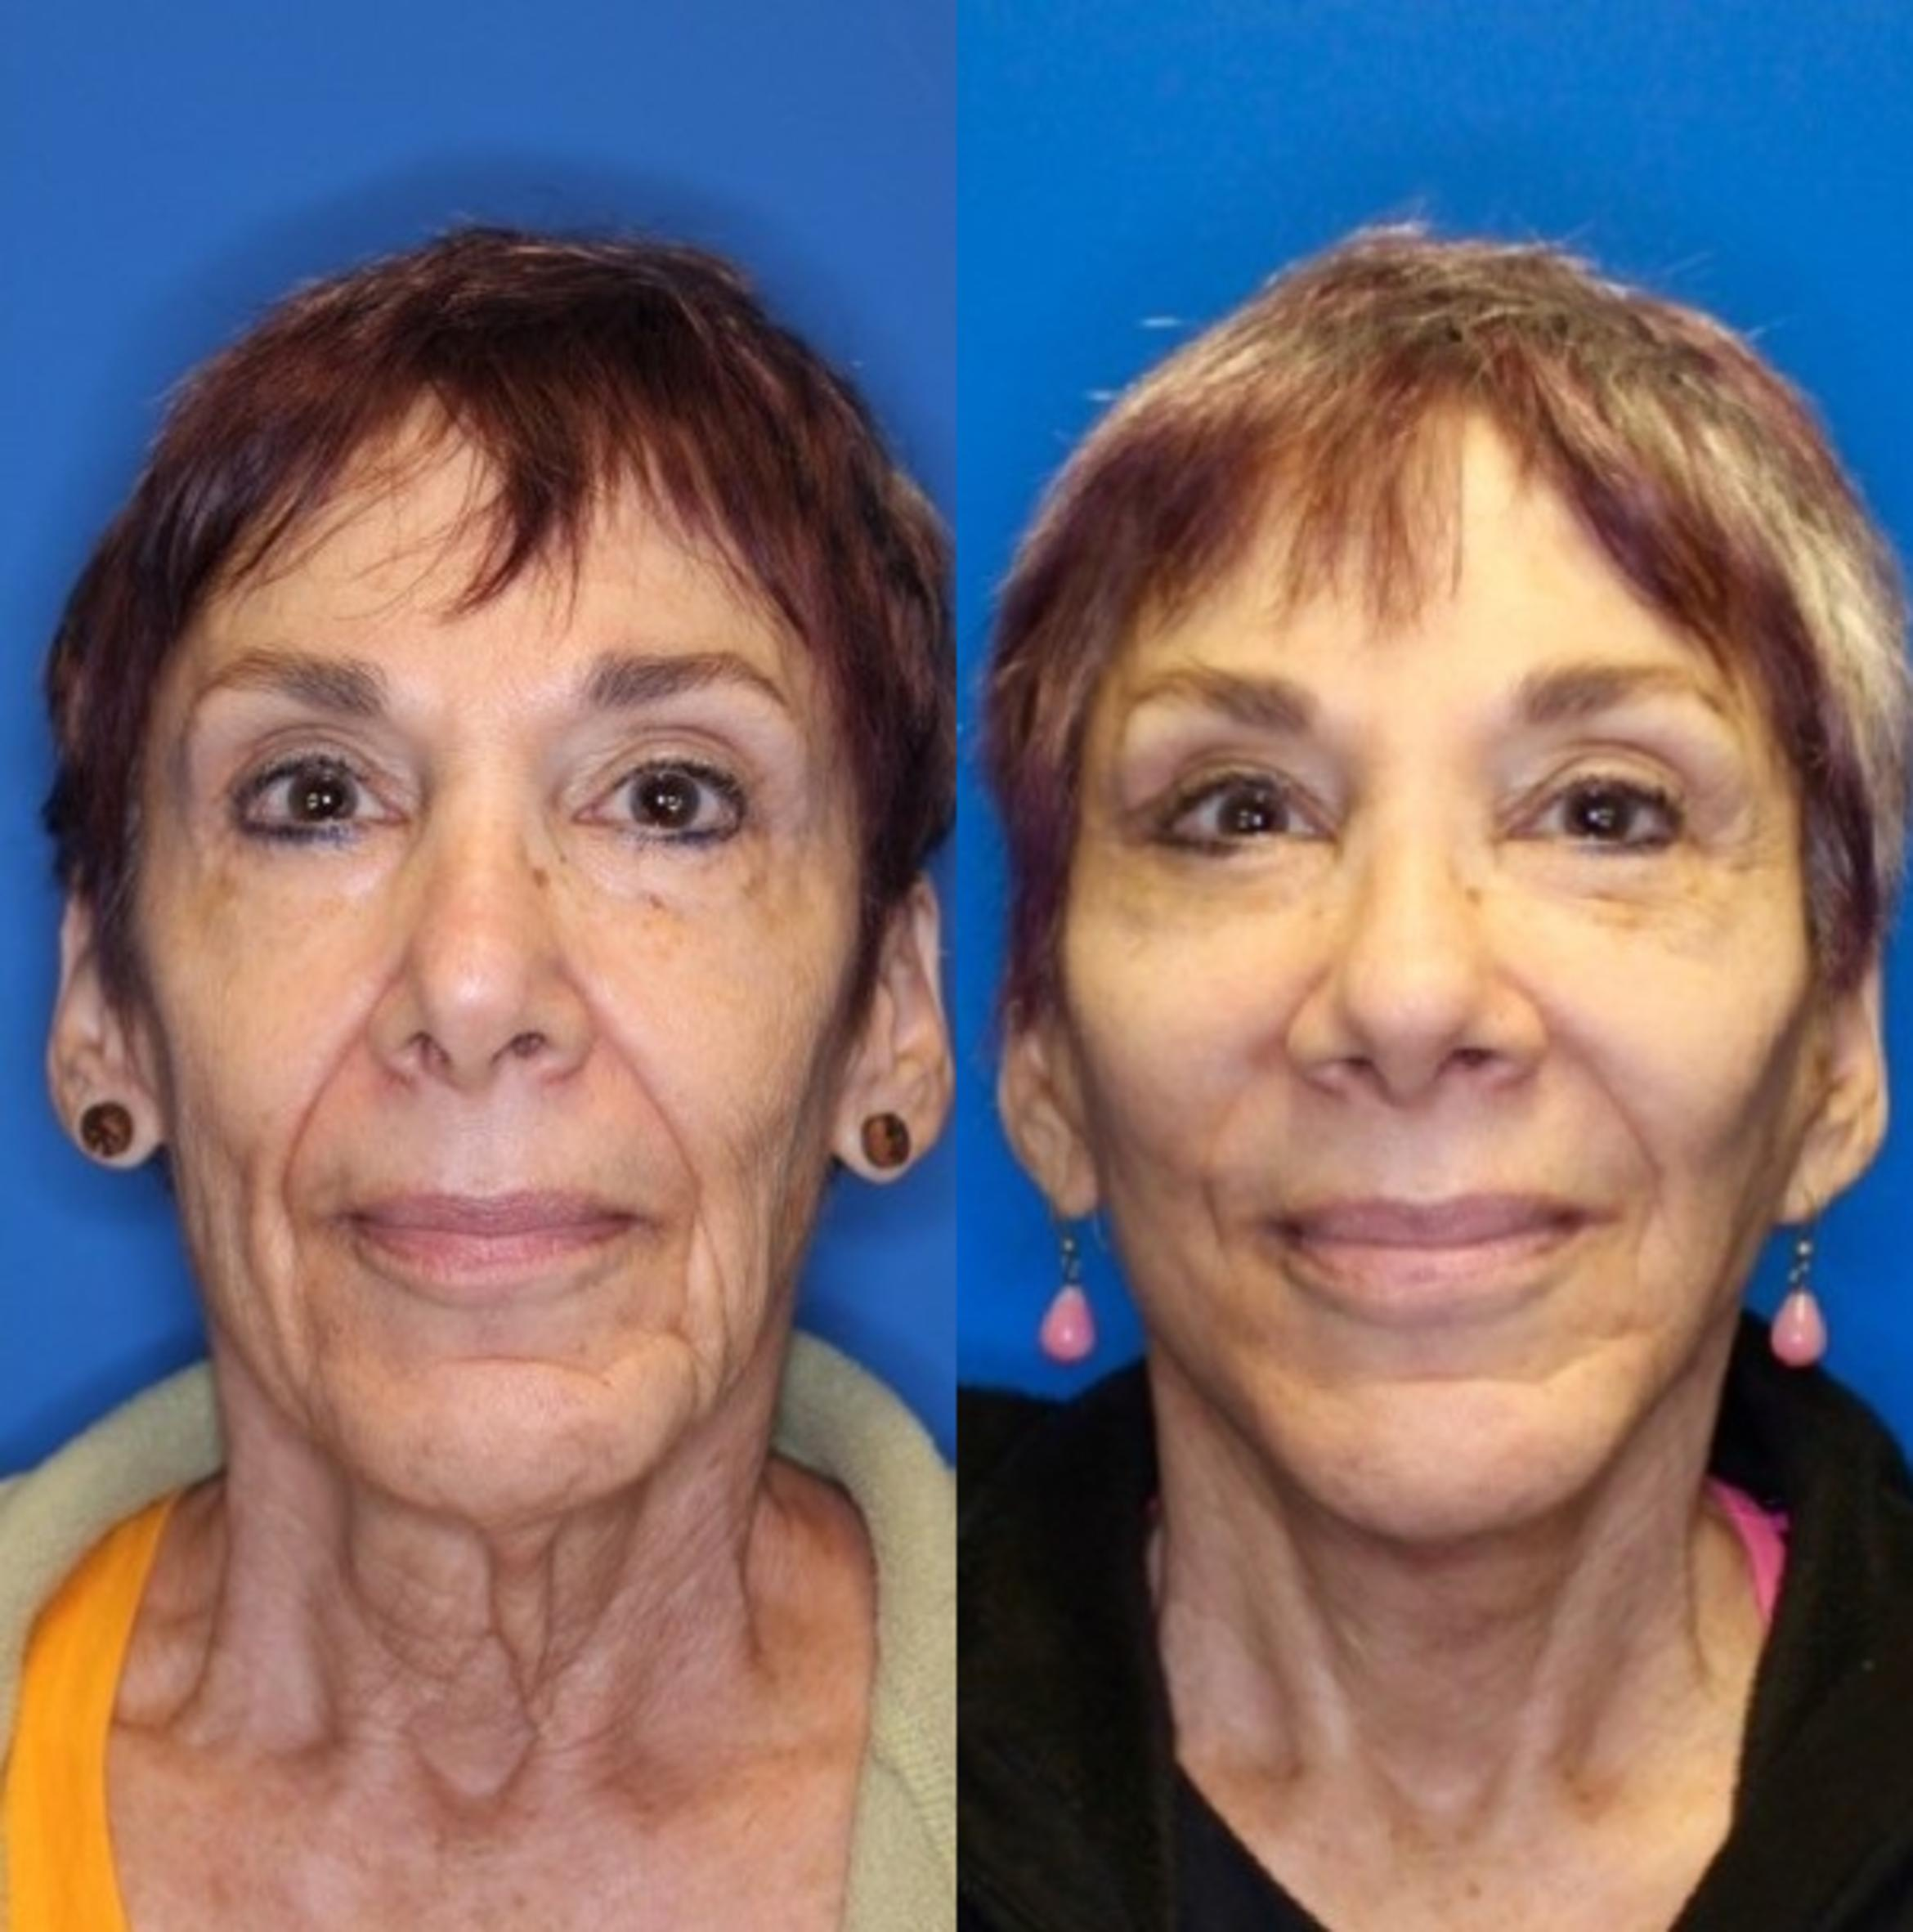 Facelift Before & After Photo | San Francisco, CA | Kaiser Permanente Cosmetic Services